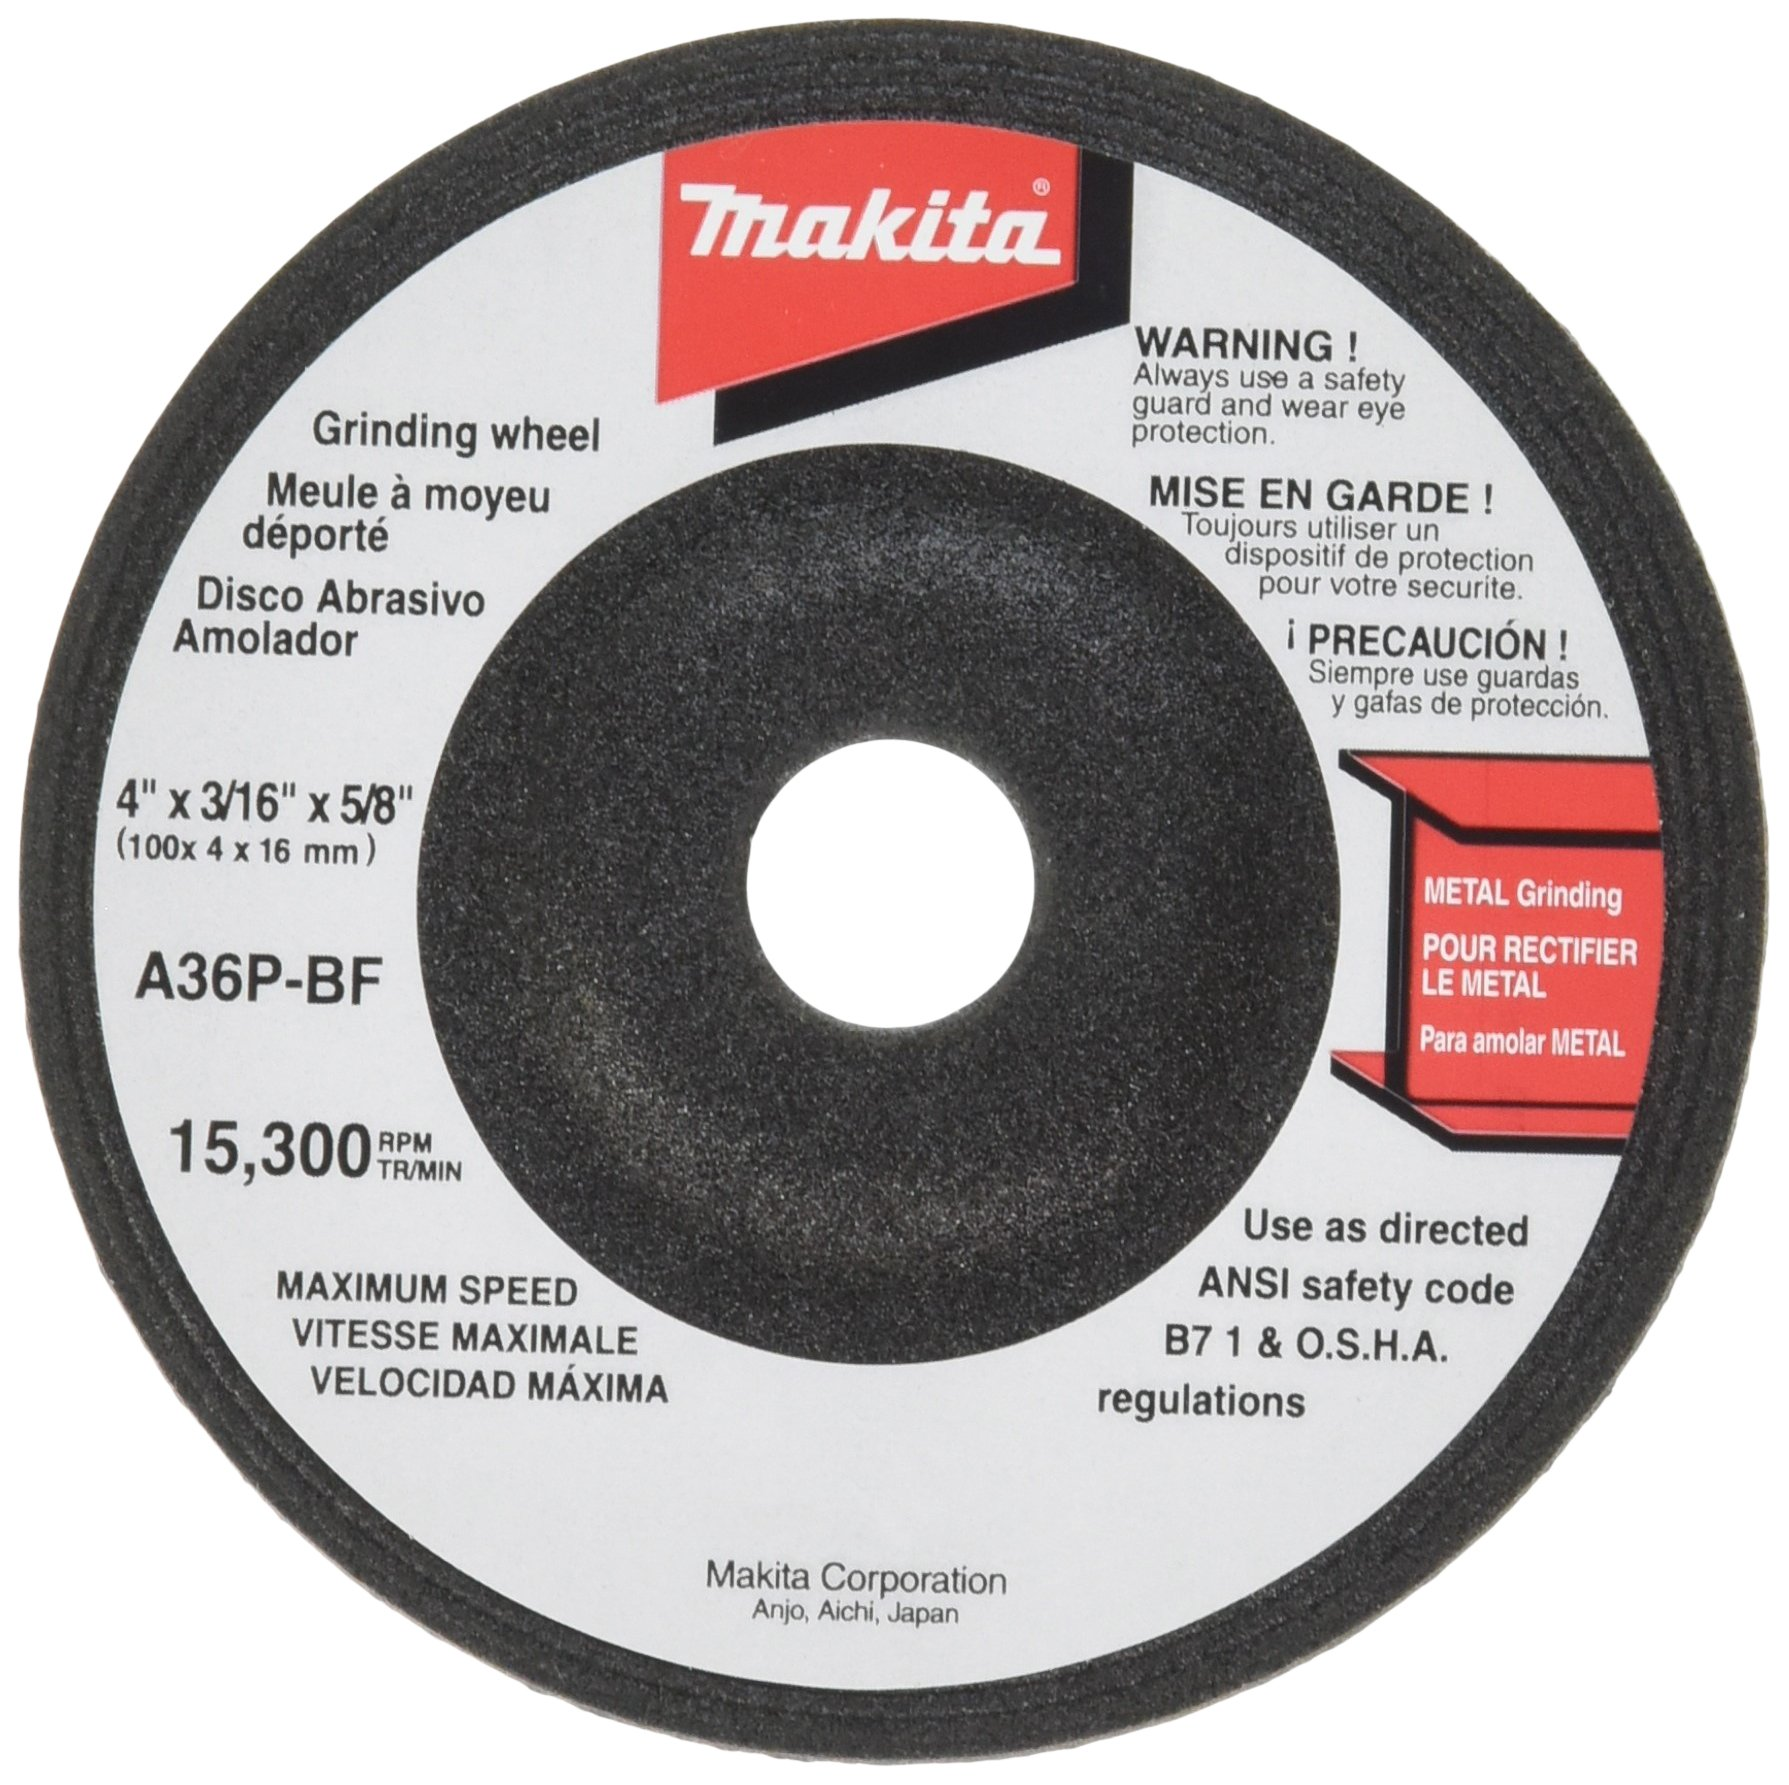 Makita 741405-2P 4-Inch Grinding Wheel, 5-Pack (Discontinued by Manufacturer)